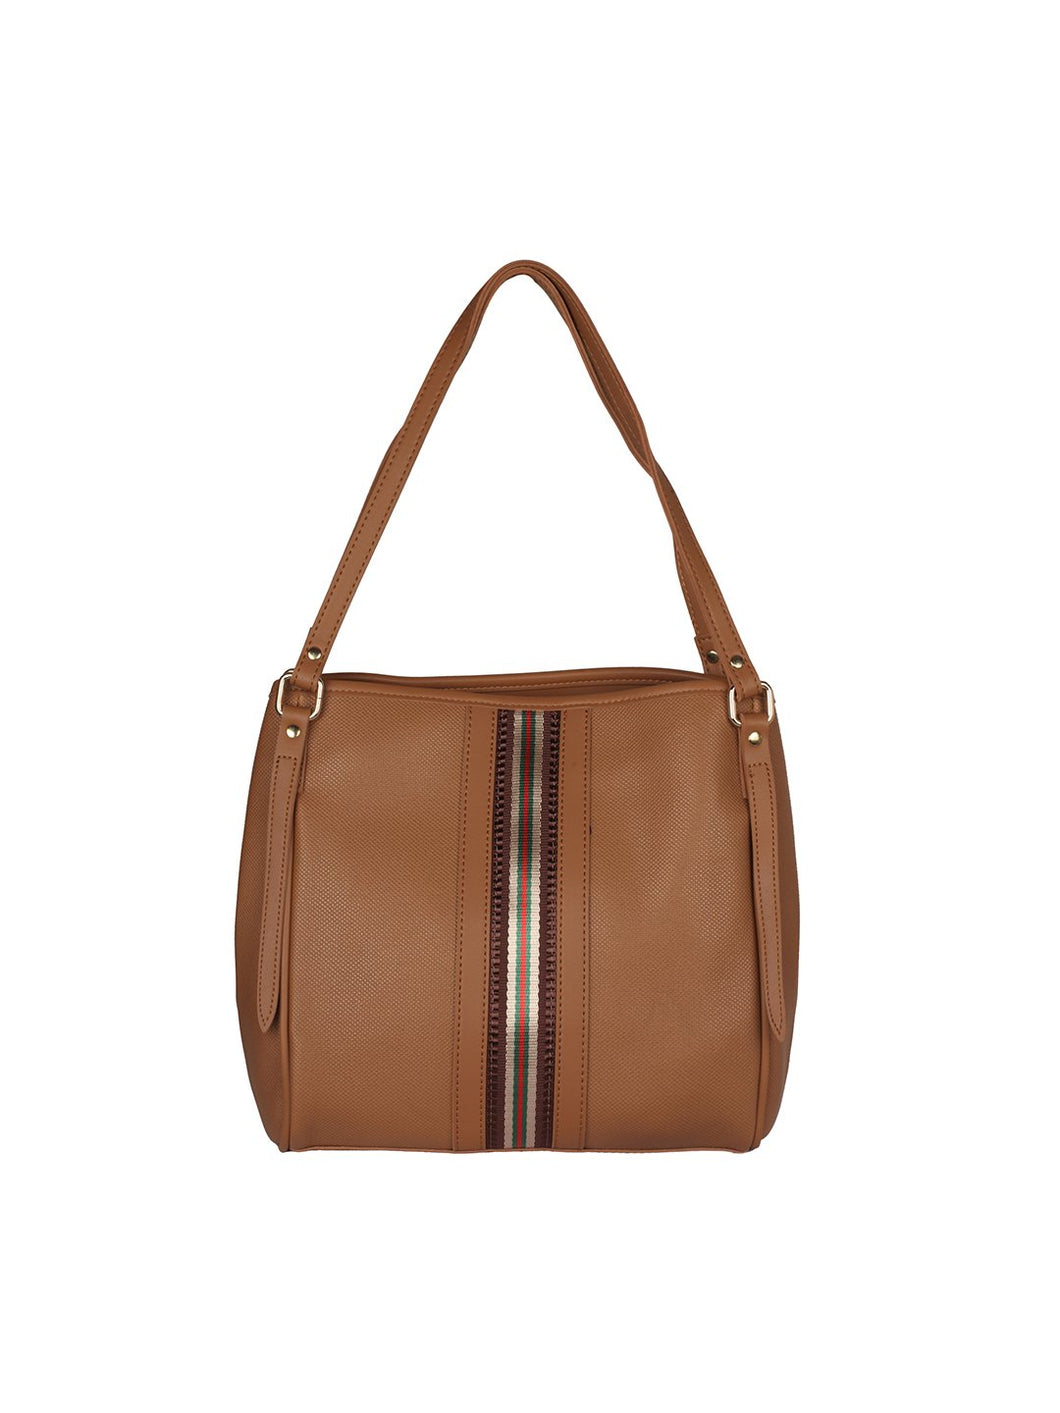 Zipper Detail Neutral Handbag-Tan